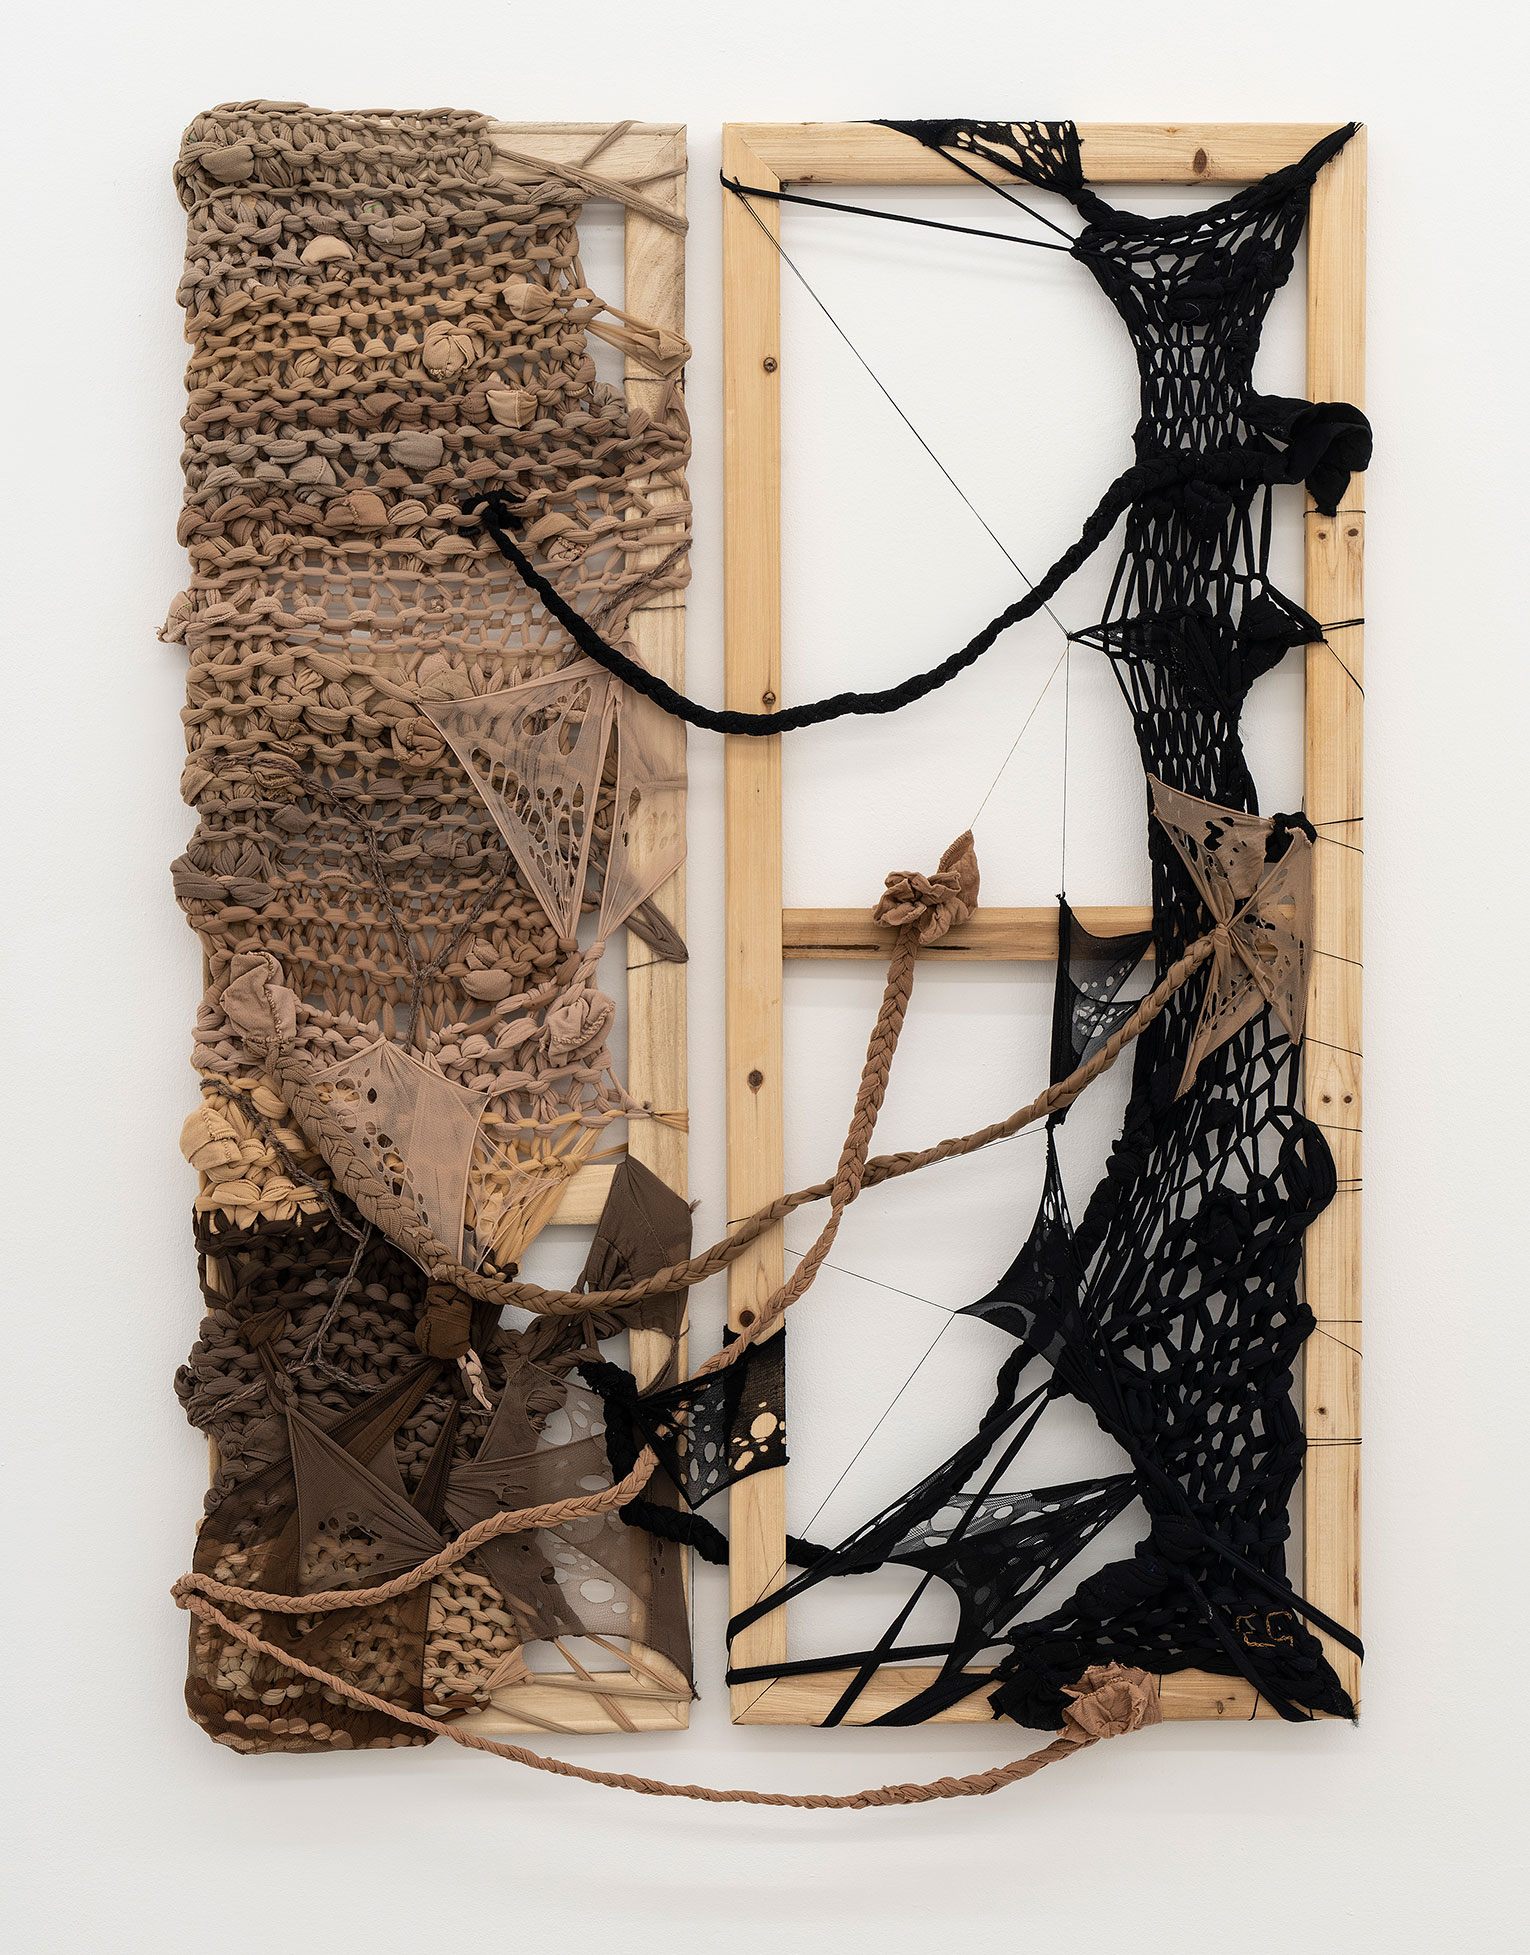 <b>Title:</b>Colonialist Ravelry, An Infection Of Mind, Skin And Being. Blackness Hangs On, A Determined Survival!<br /><b>Year:</b>2021<br /><b>Medium:</b>Used tights, cotton thread and wool yarn on reused empty canvas frame<br /><b>Size:</b>100 x 73 cm